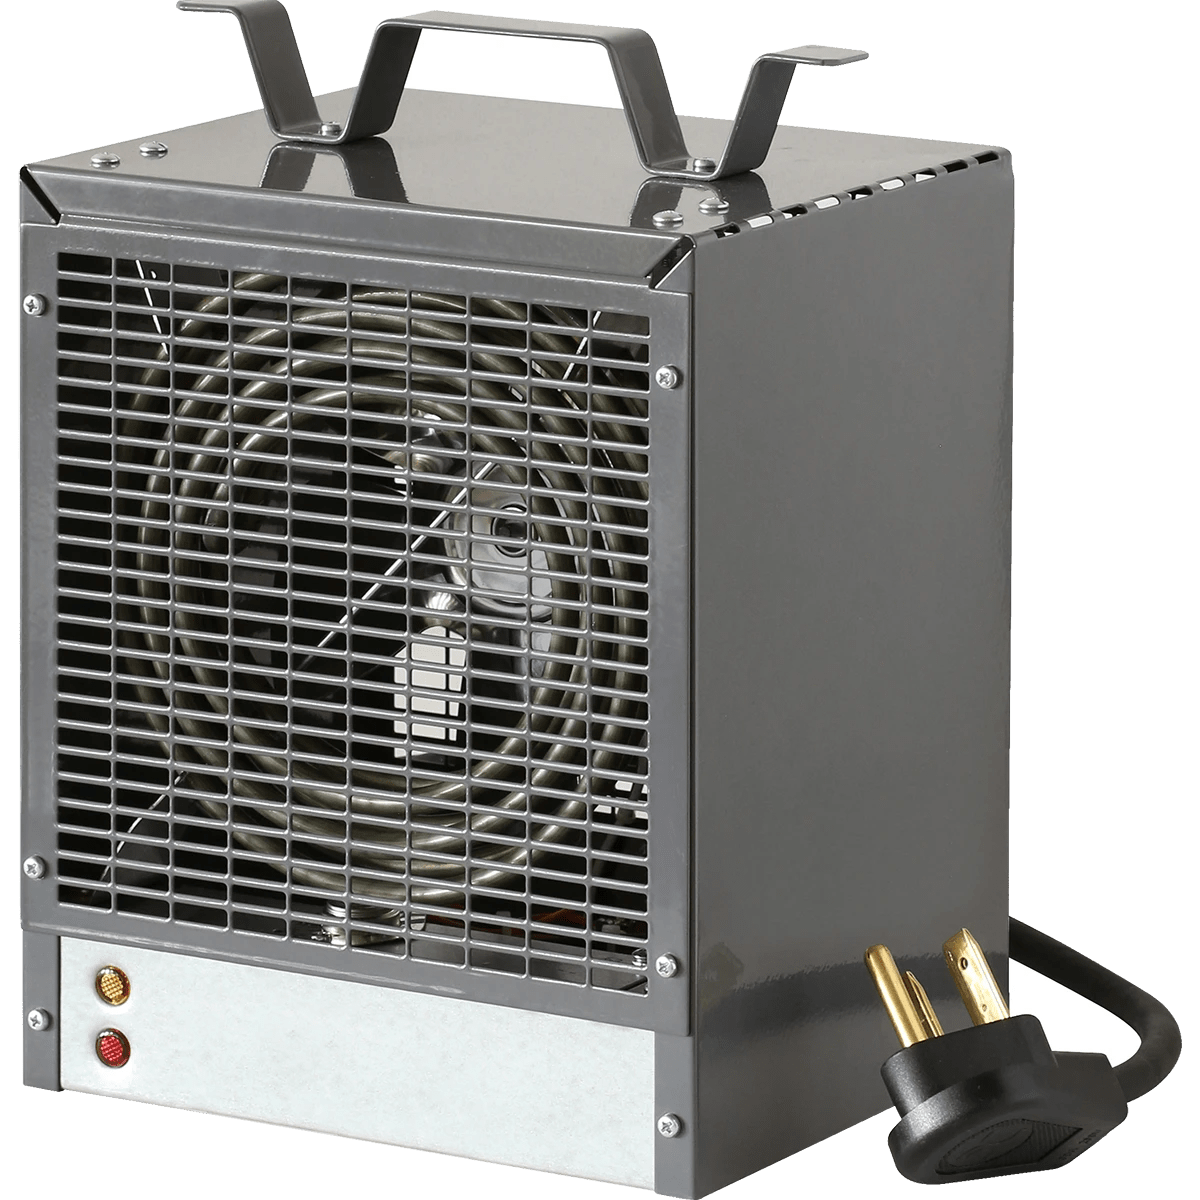 Electric Garage Heater Black Friday Dimplex Dch4831lg Electric Garage And Construction Heater